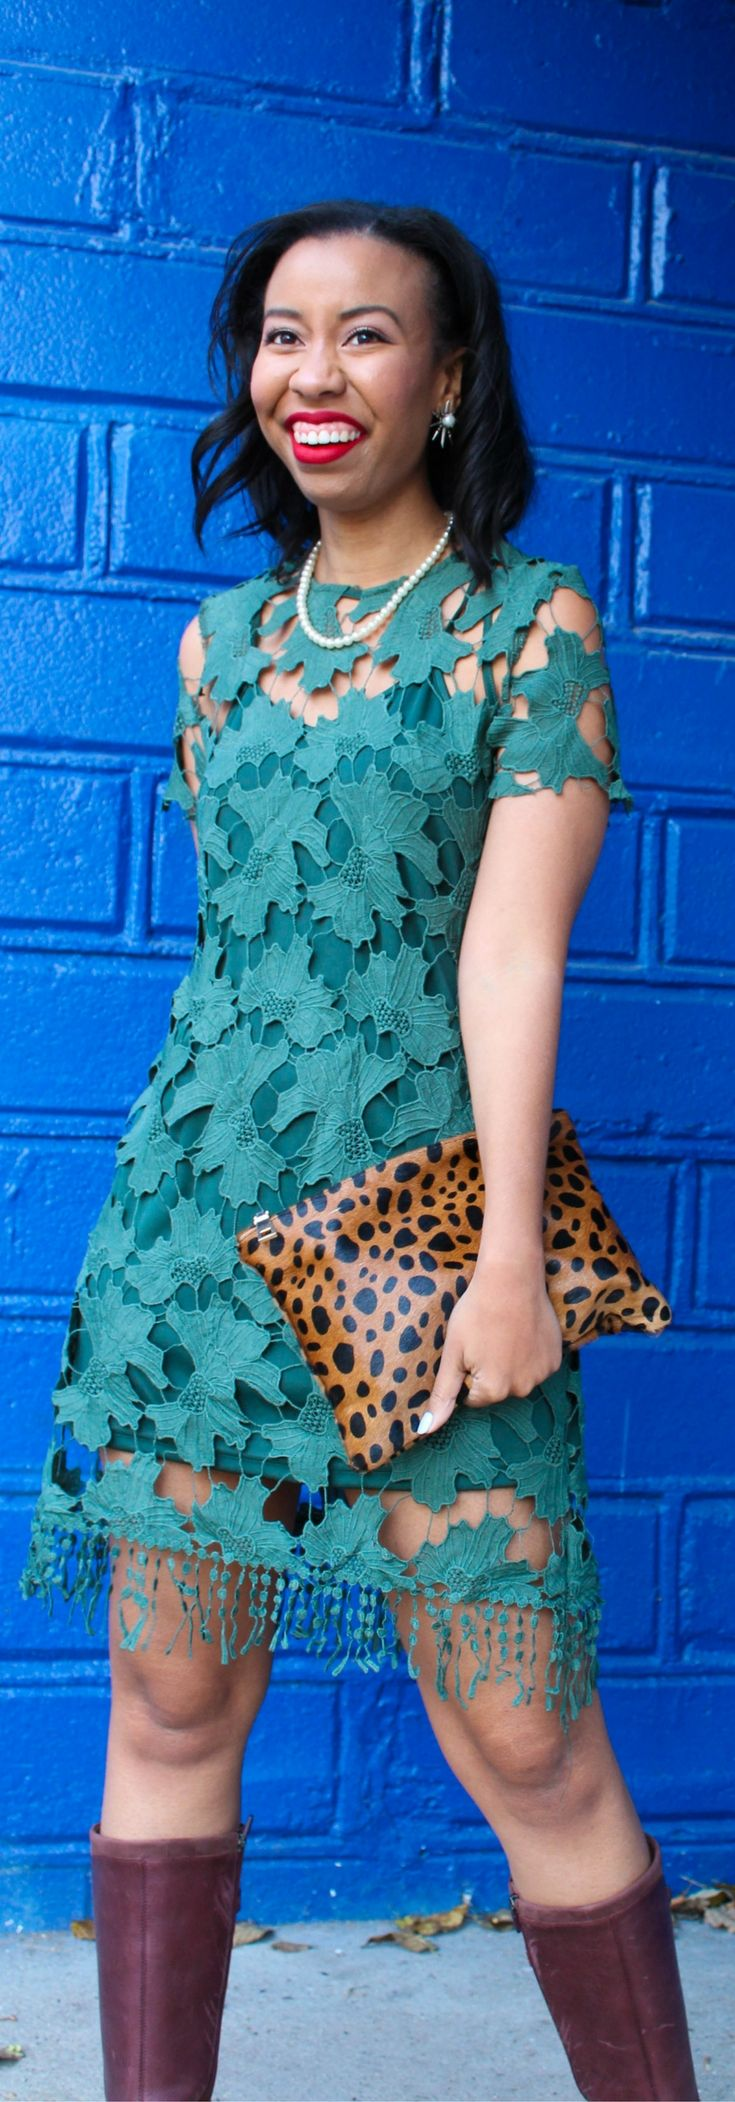 Looking for a dressy casual fall outfit for Thanksgiving? Style blogger features a fall green lace dress from Shop the Mint that fits the bill. // how to wear a lace dress, riding boots outfit idea, fall date night look